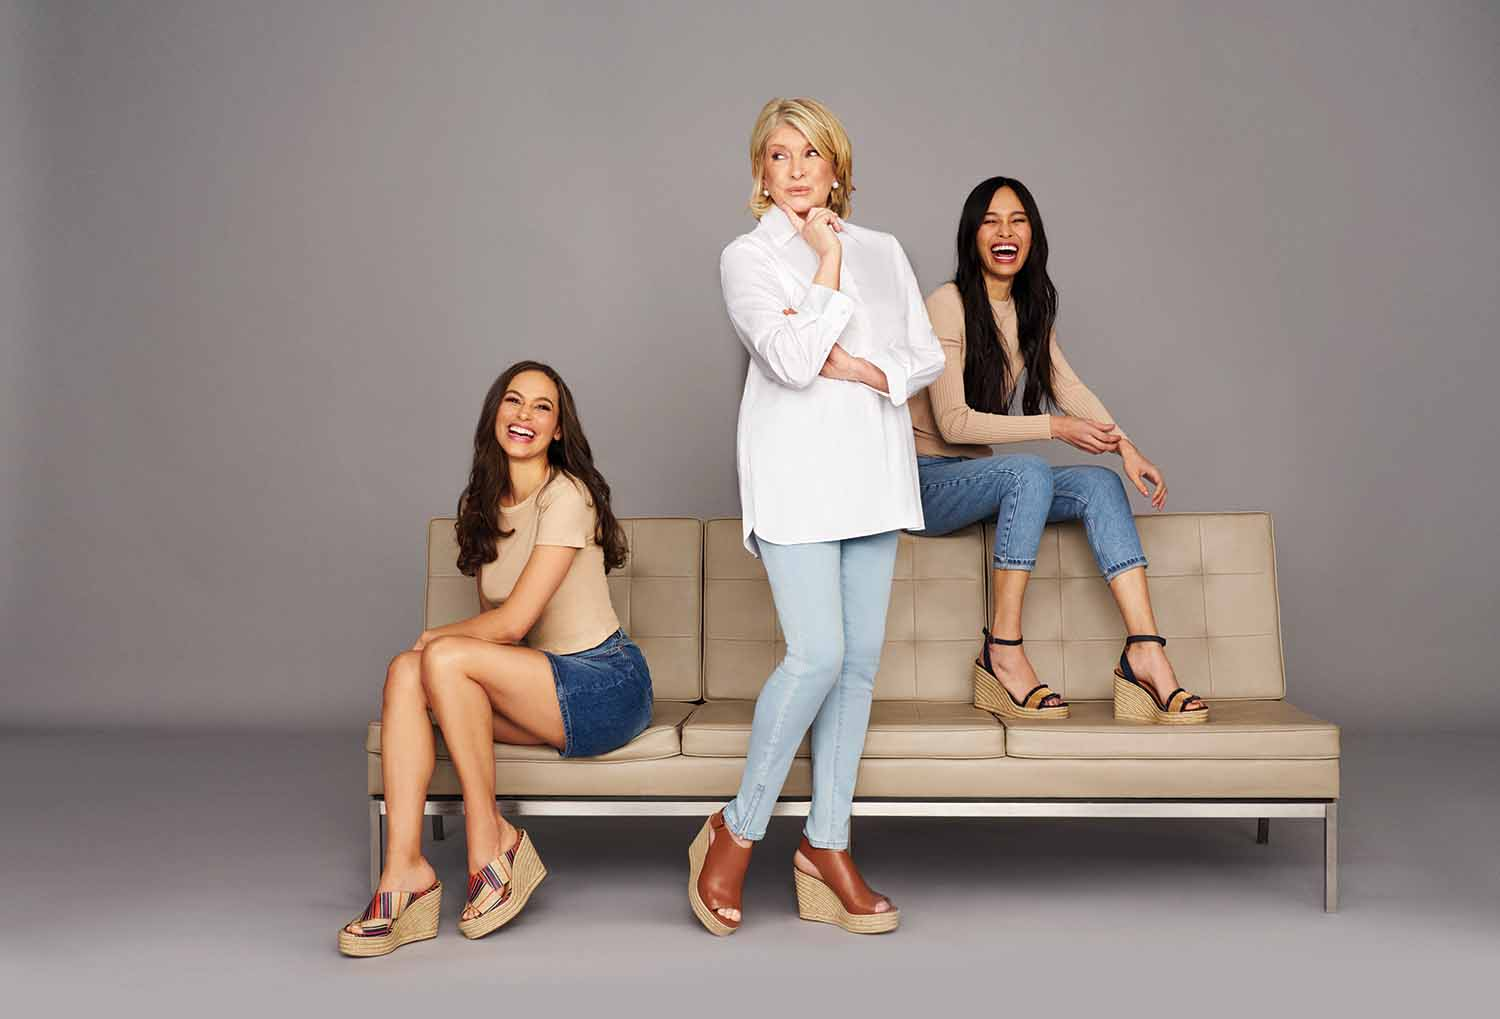 d32539332e56 Aerosoles Launches Spring 2019 Collection with Martha Stewart ...